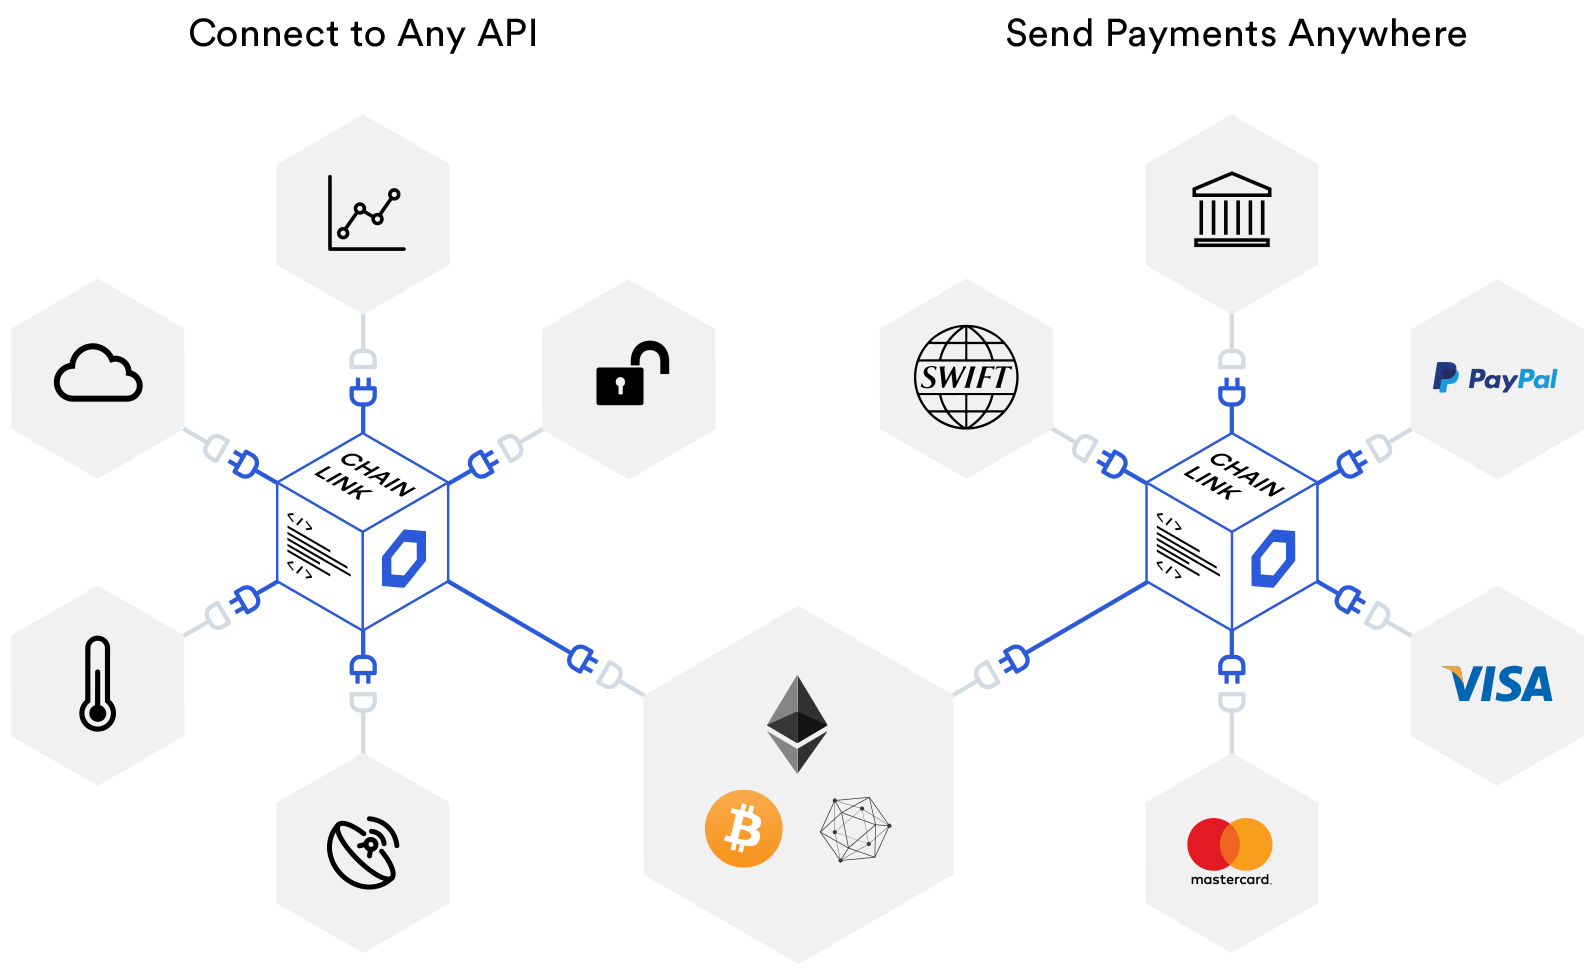 Chainlink oracles connect smart contracts on any blockchain to any input and output